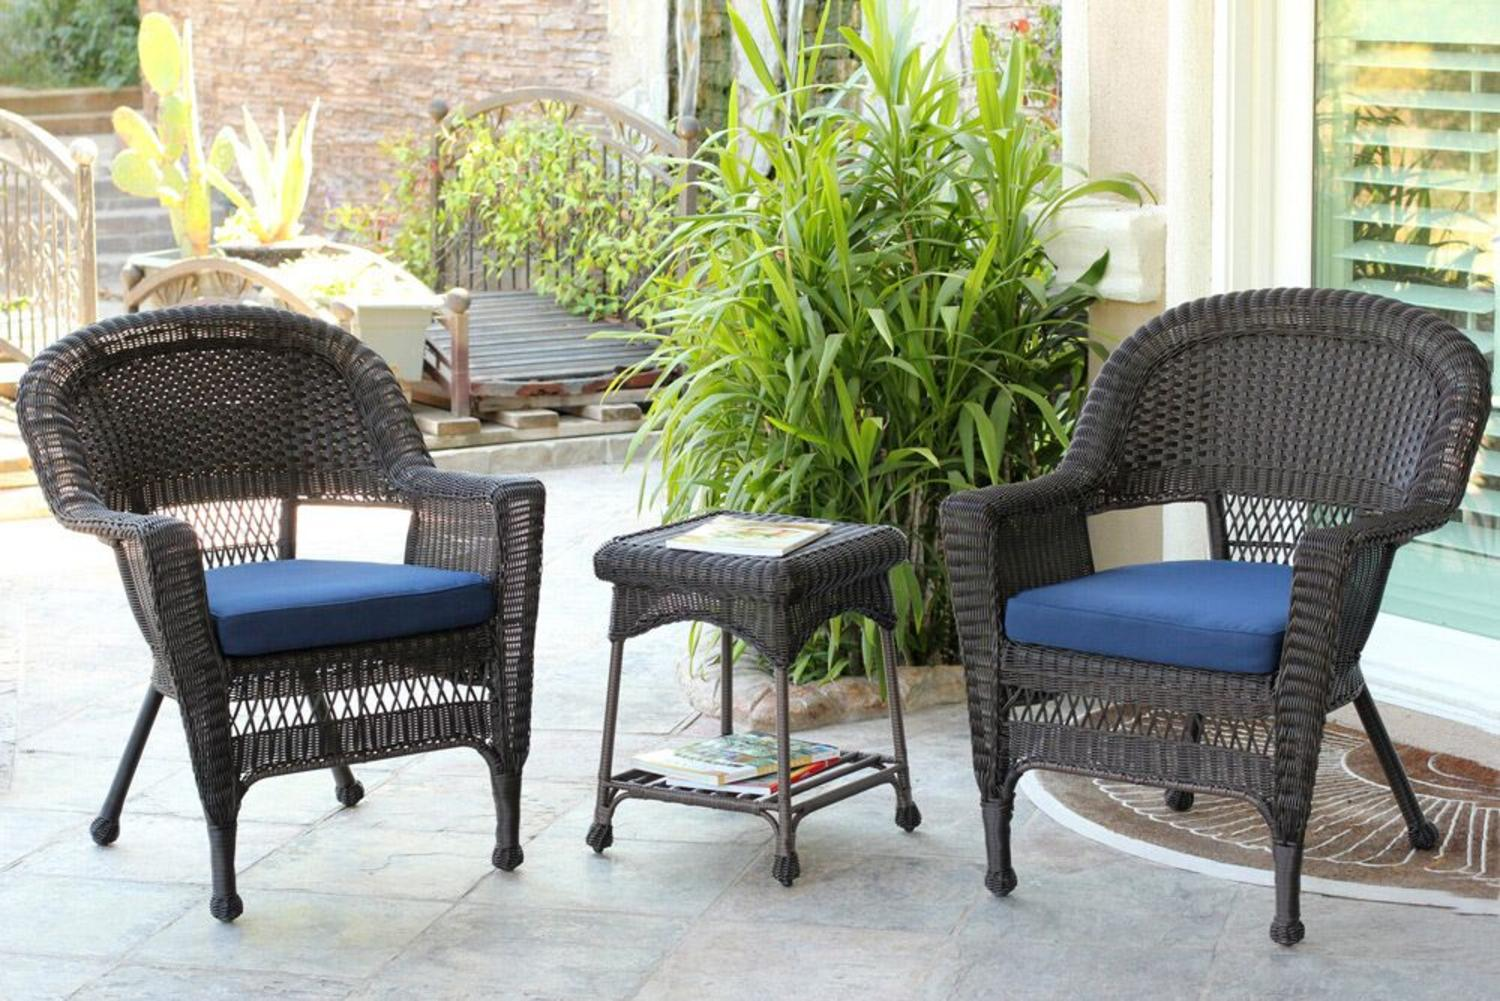 Venus Pub Table Set With Barstools 5 Piece Outdoor Wicker Patio Furniture -  Traveller Location